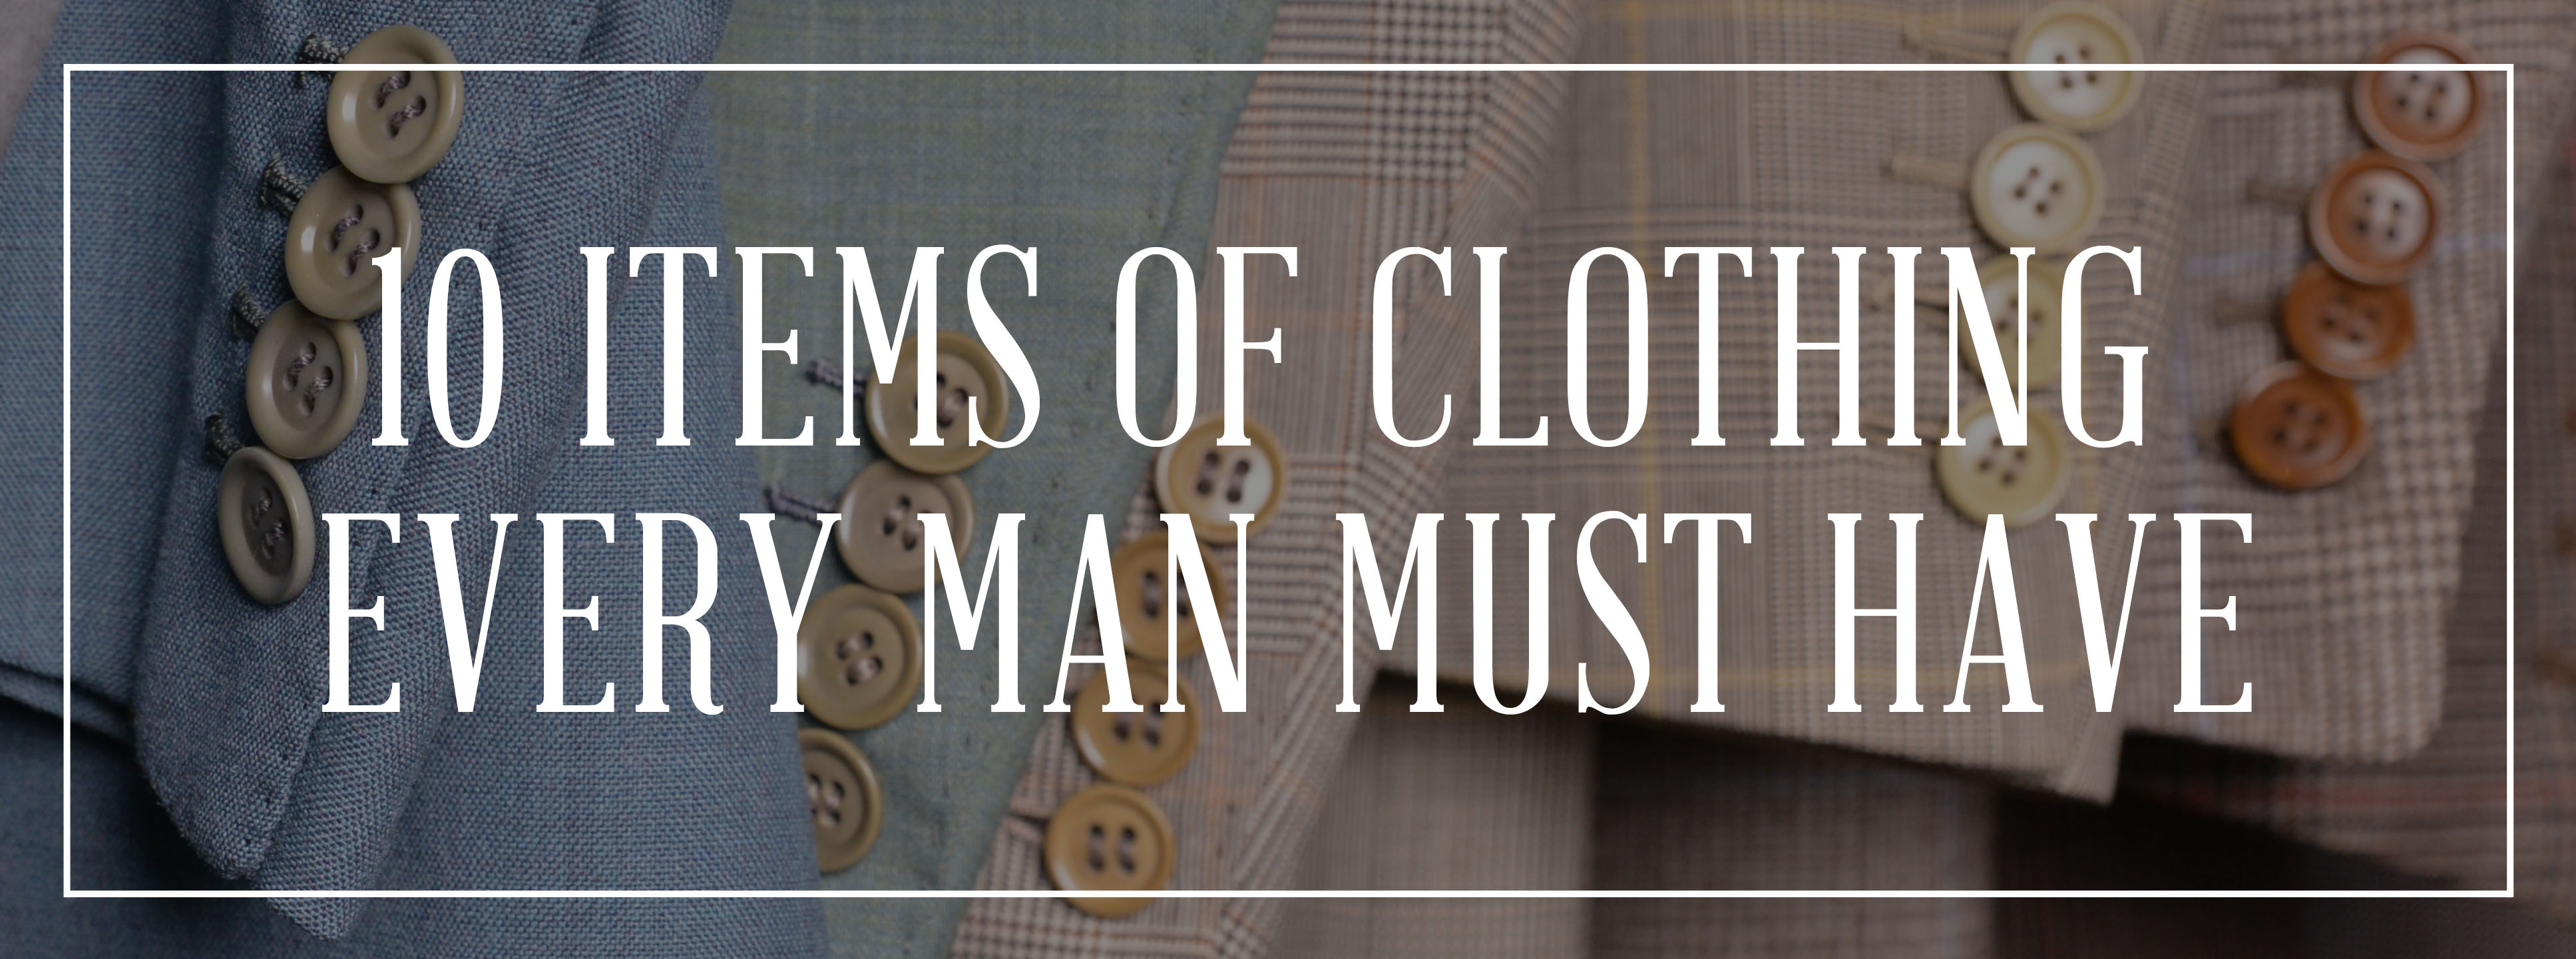 19575cb3117 10 Items of Clothing Every Man Should Own — Gentleman's Gazette